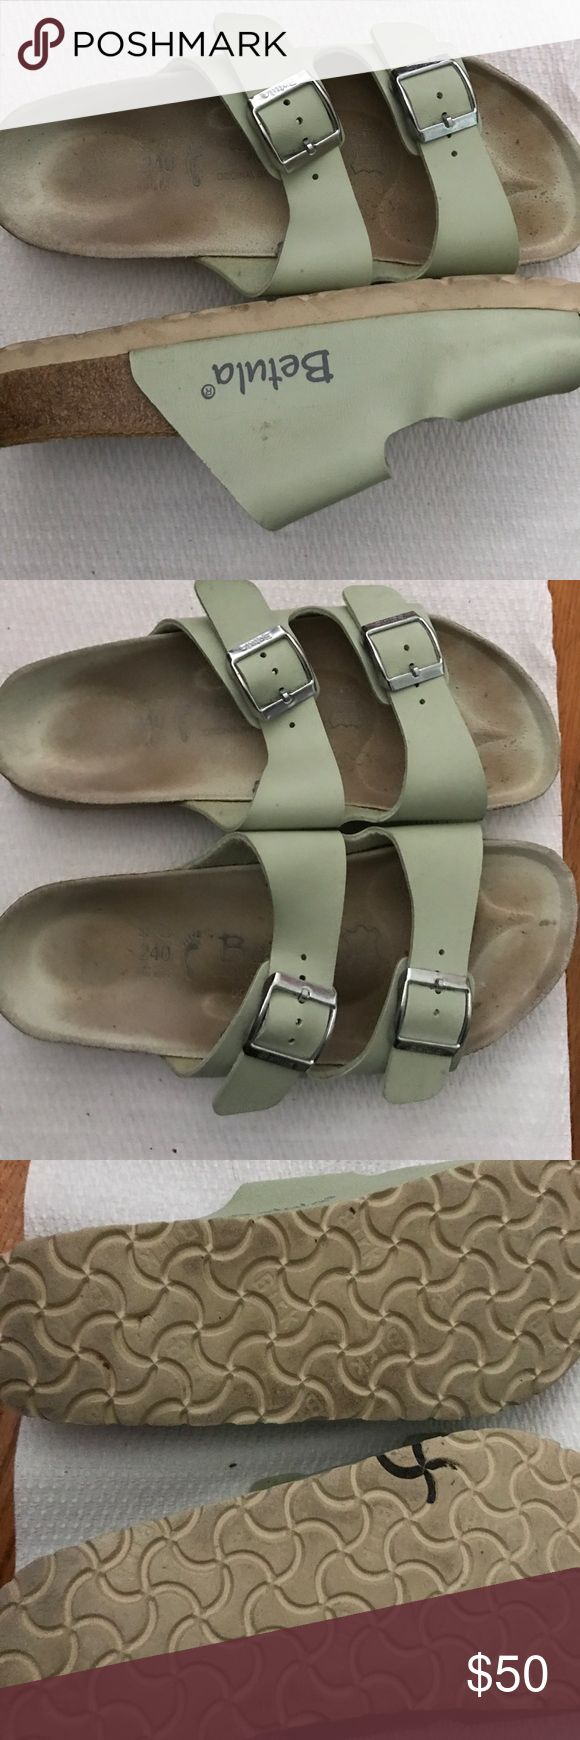 L6/M4 mint green Betula sandals Birkenstock A beautiful minty green two straps with buckles. Smoke free home. Betula/Birkenstock Shoes Sandals